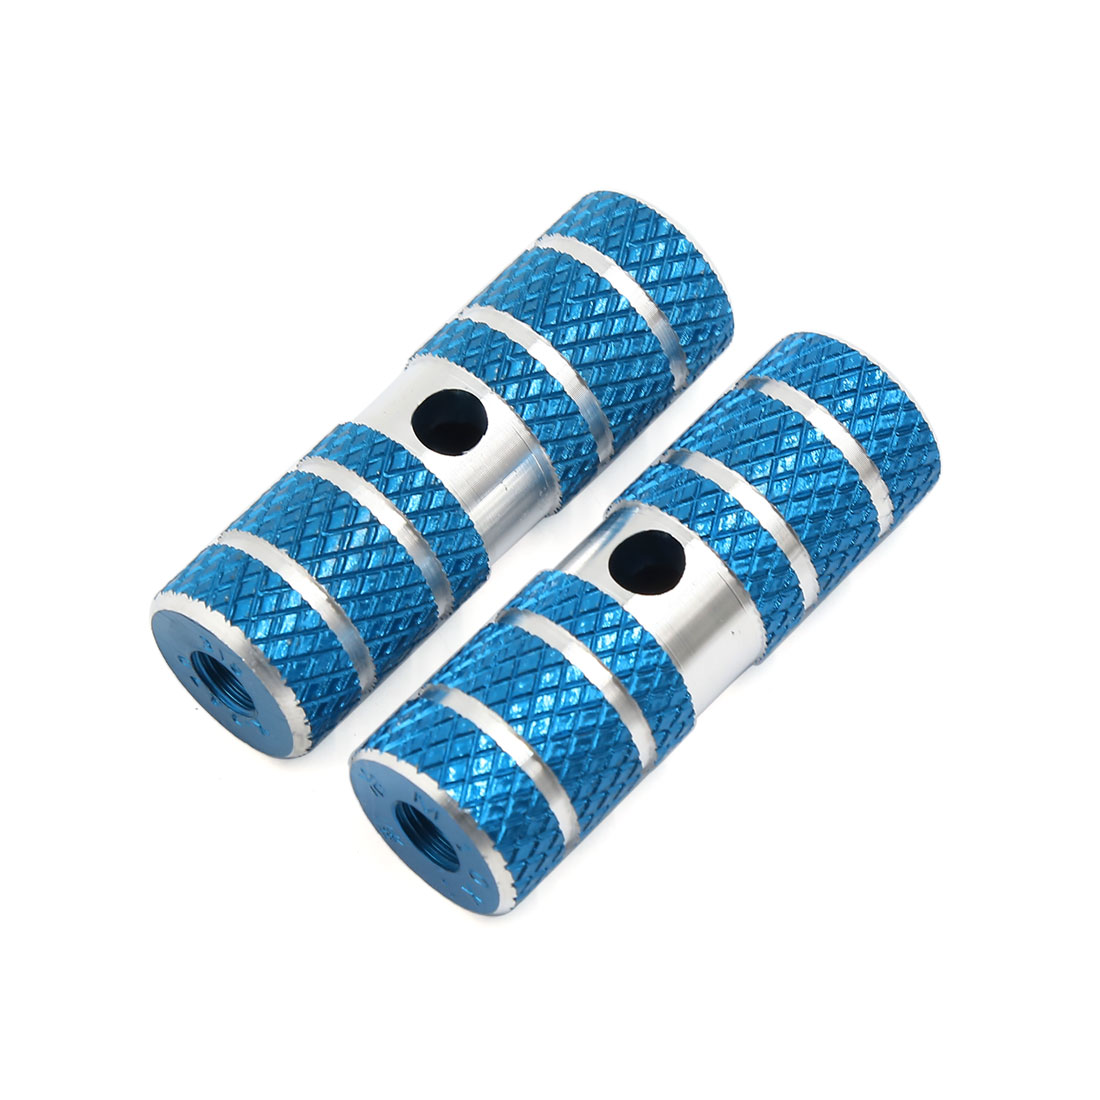 Pair Blue Aluminum Alloy Nonslip Cycling Bike Bicycle Axle Foot Pegs 70mm x 23mm